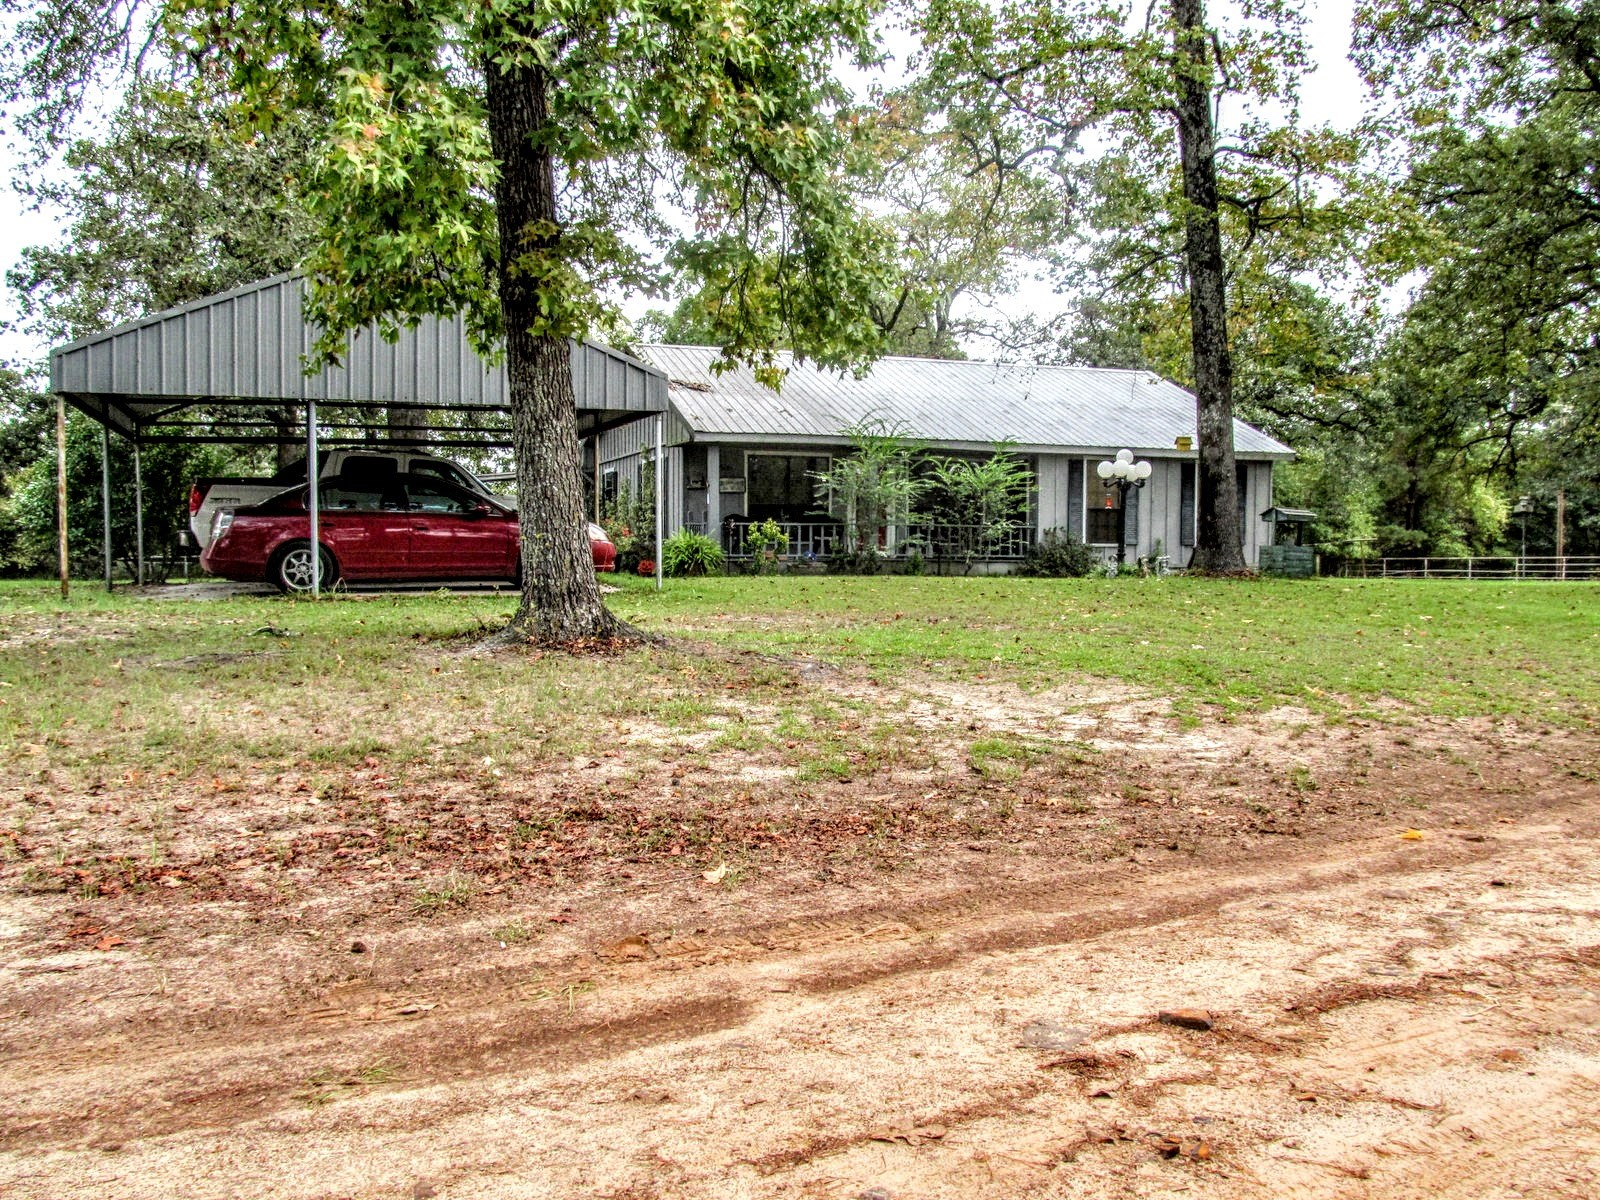 COUNTRY HOME ON 4 ACRES - WINNSBORO - EAST TEXAS